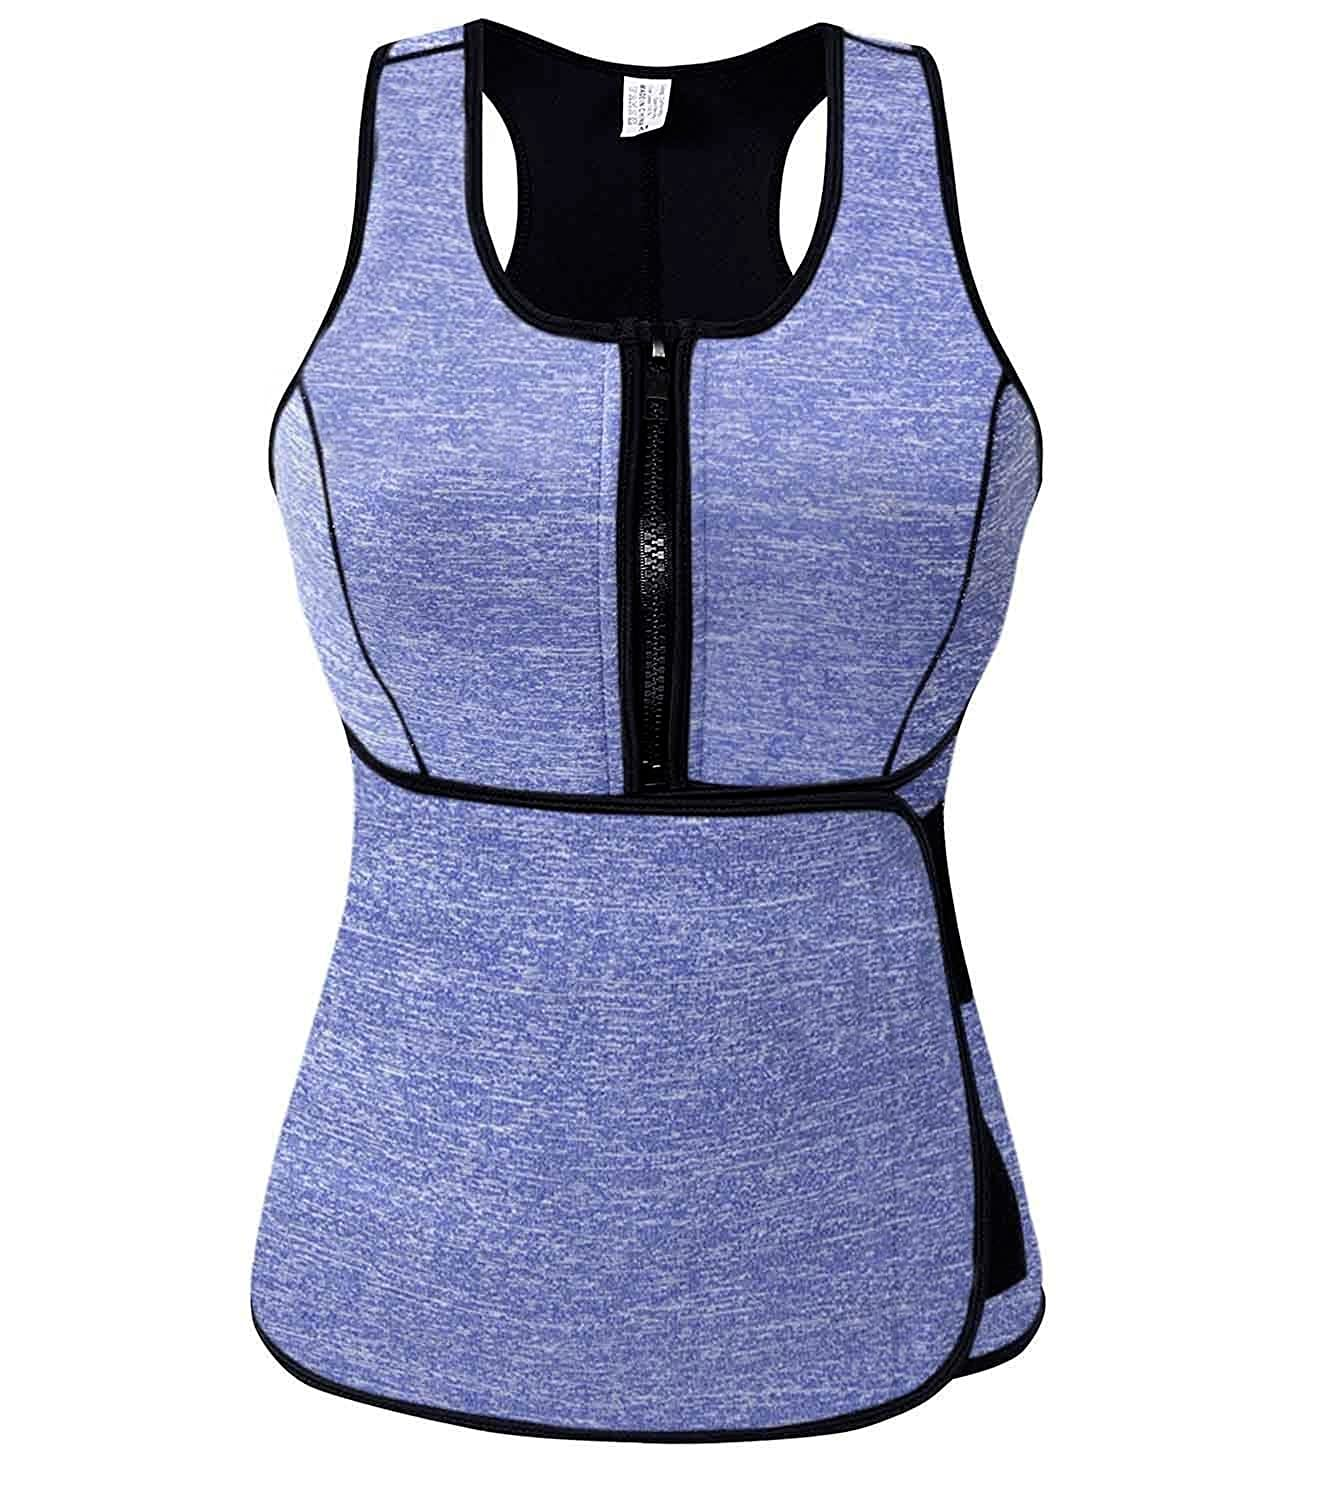 233acb12d5 New special design to make the vest more flexible and the waist belt more  sticky. Give you a perfect fit.